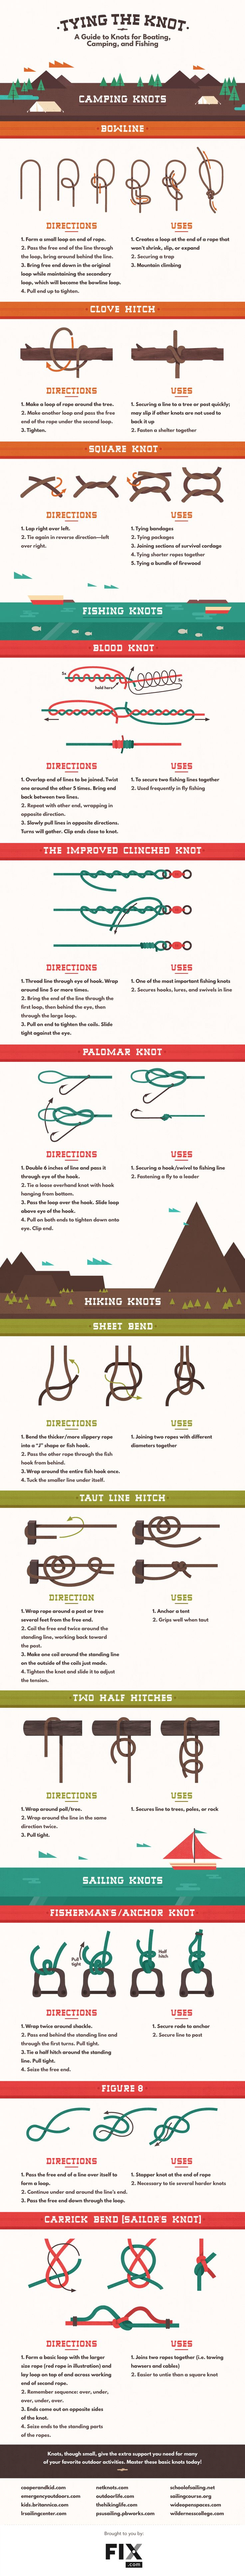 How To Tie A Knot For Fishing, Sailing - Knowing how to tie a good knot can get you out a lot of tricky situations.